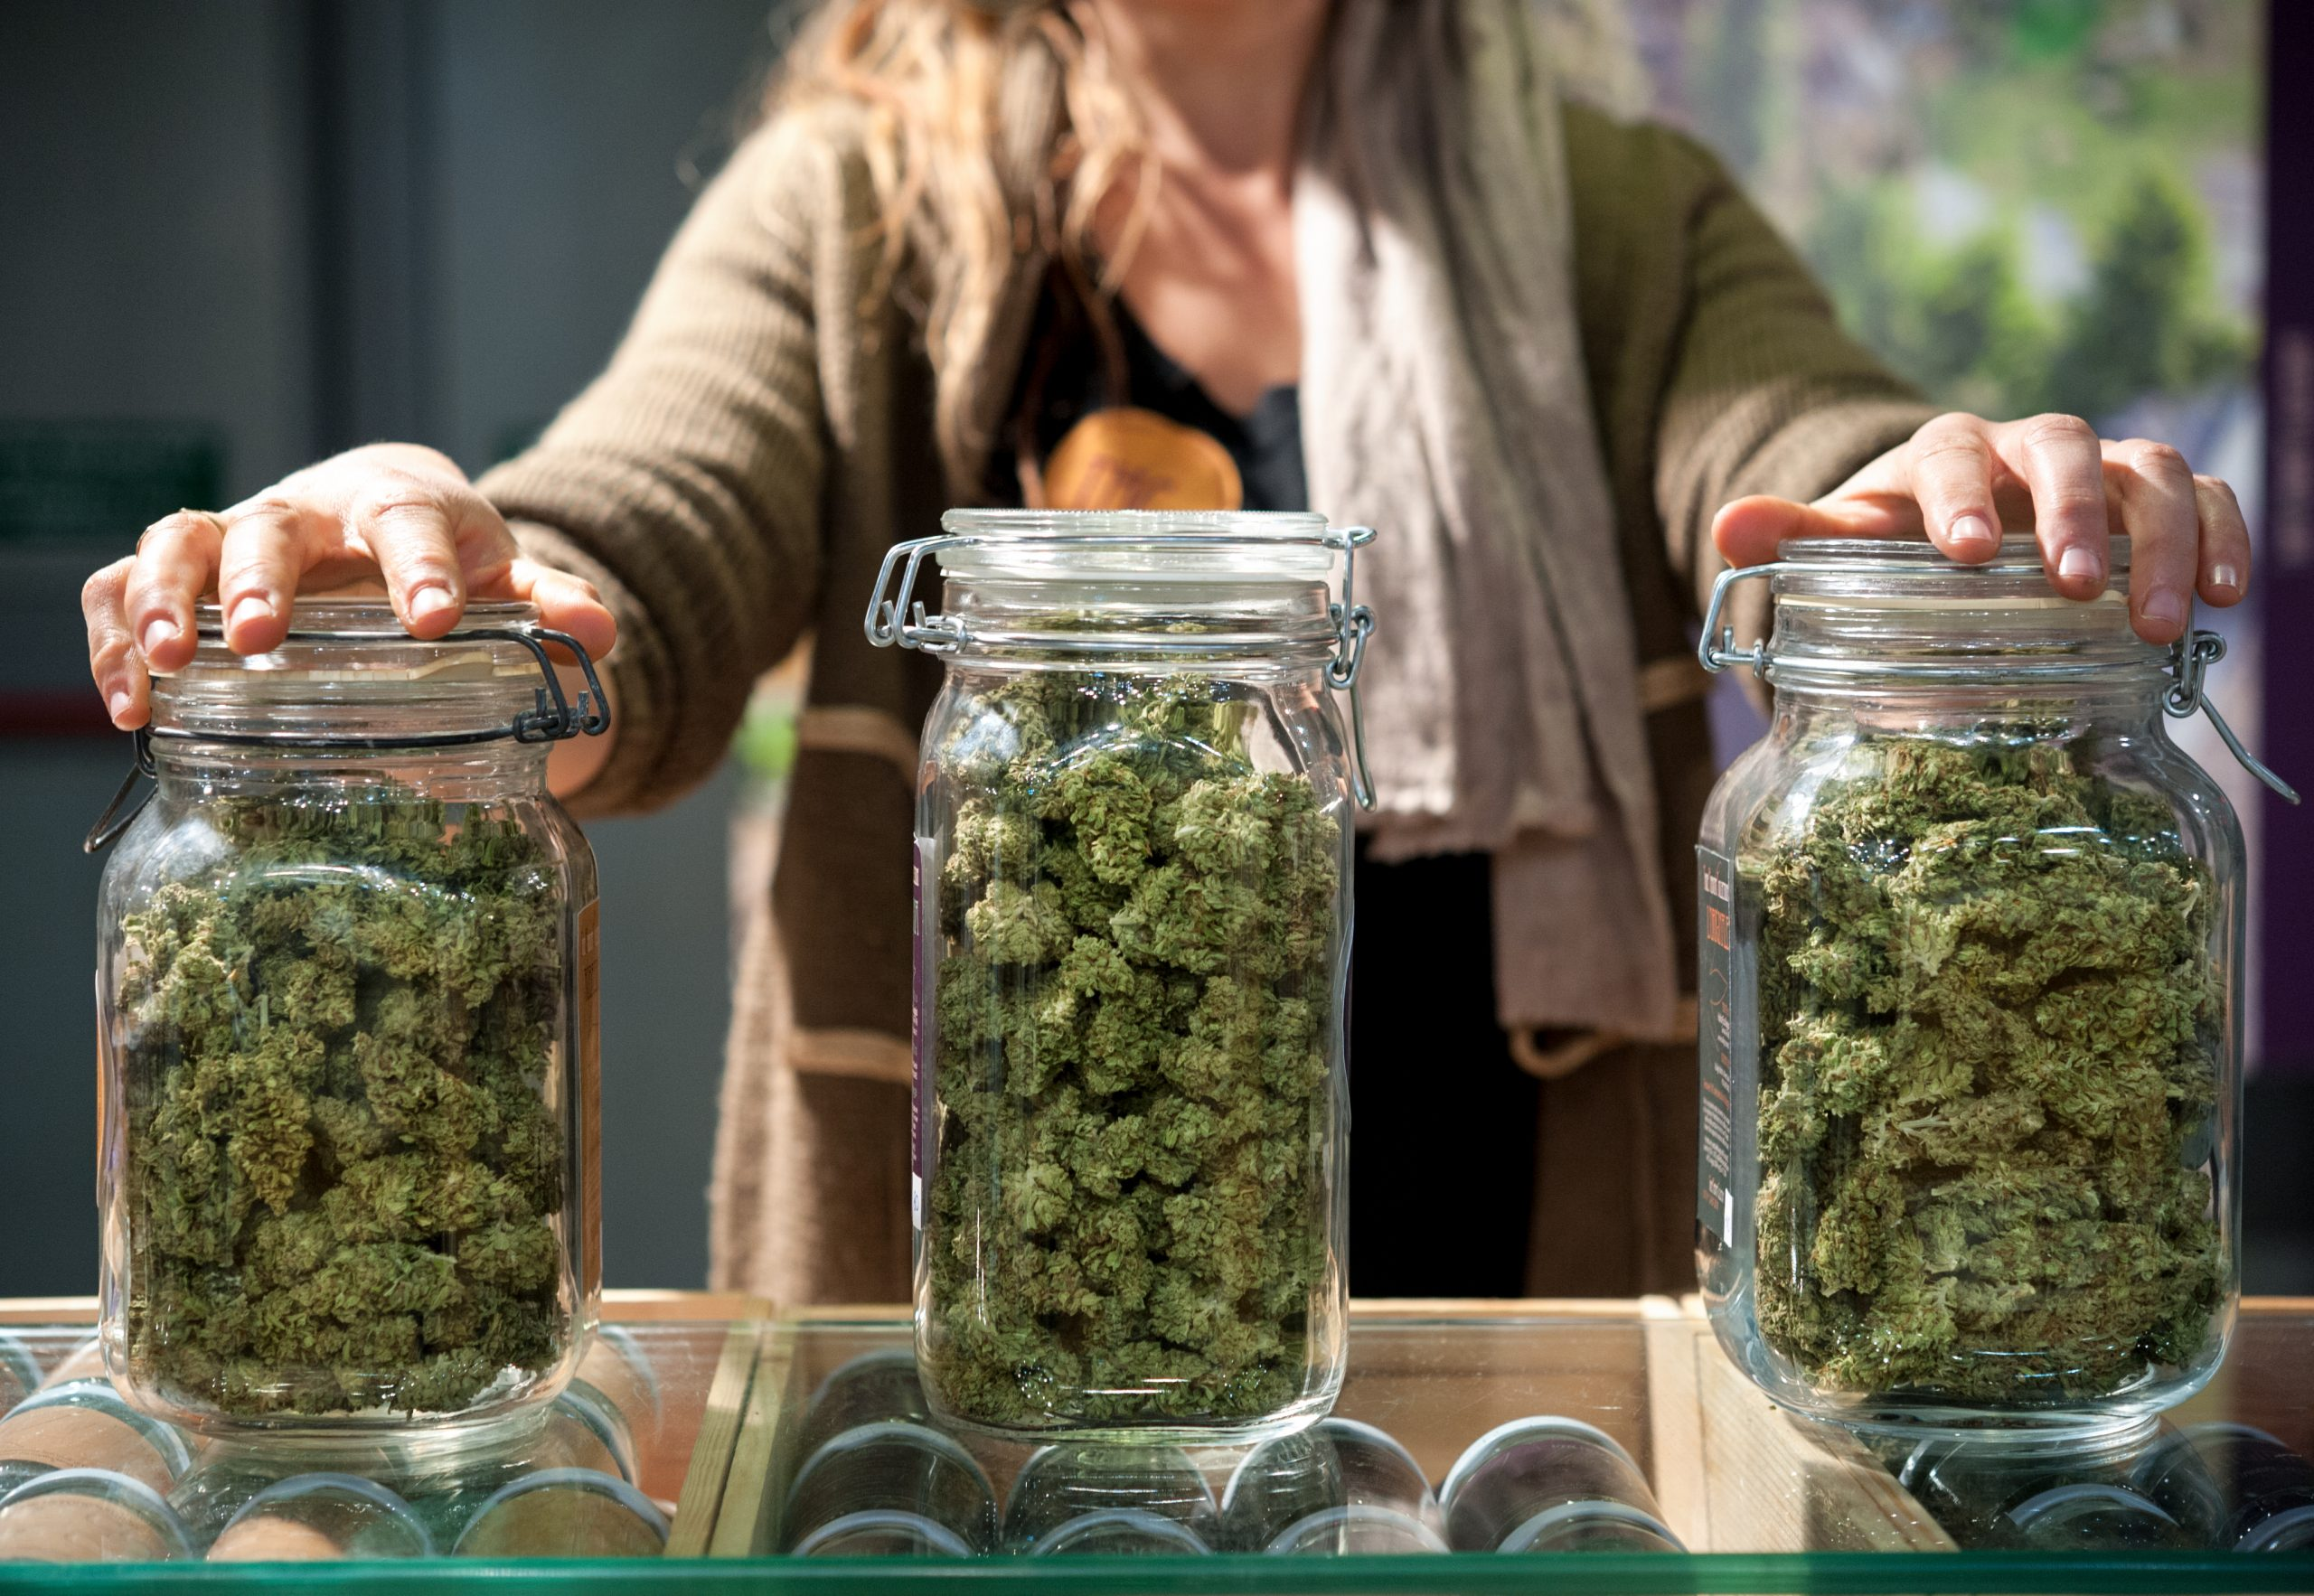 Is too much consumption of cannabis cause risk?